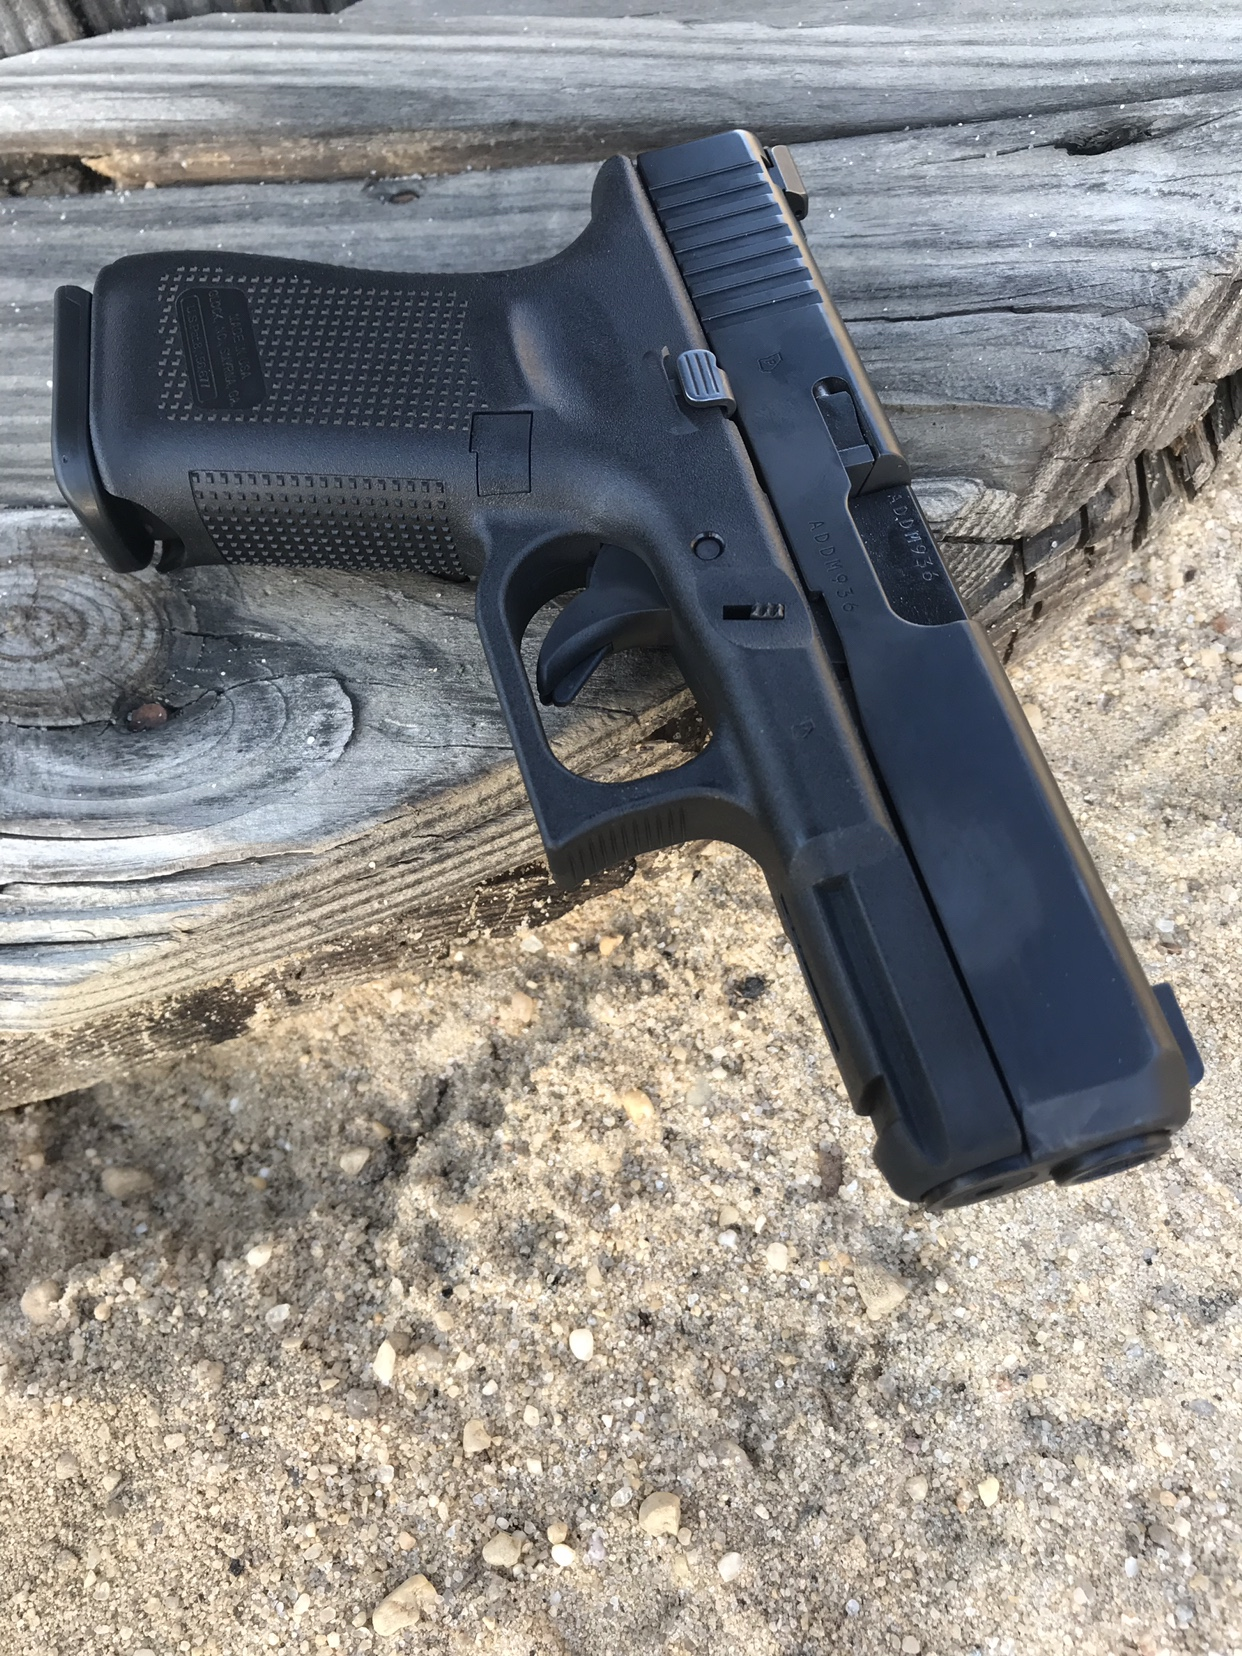 THE* Gen 5 Glock thread: First Impressions, Reviews and